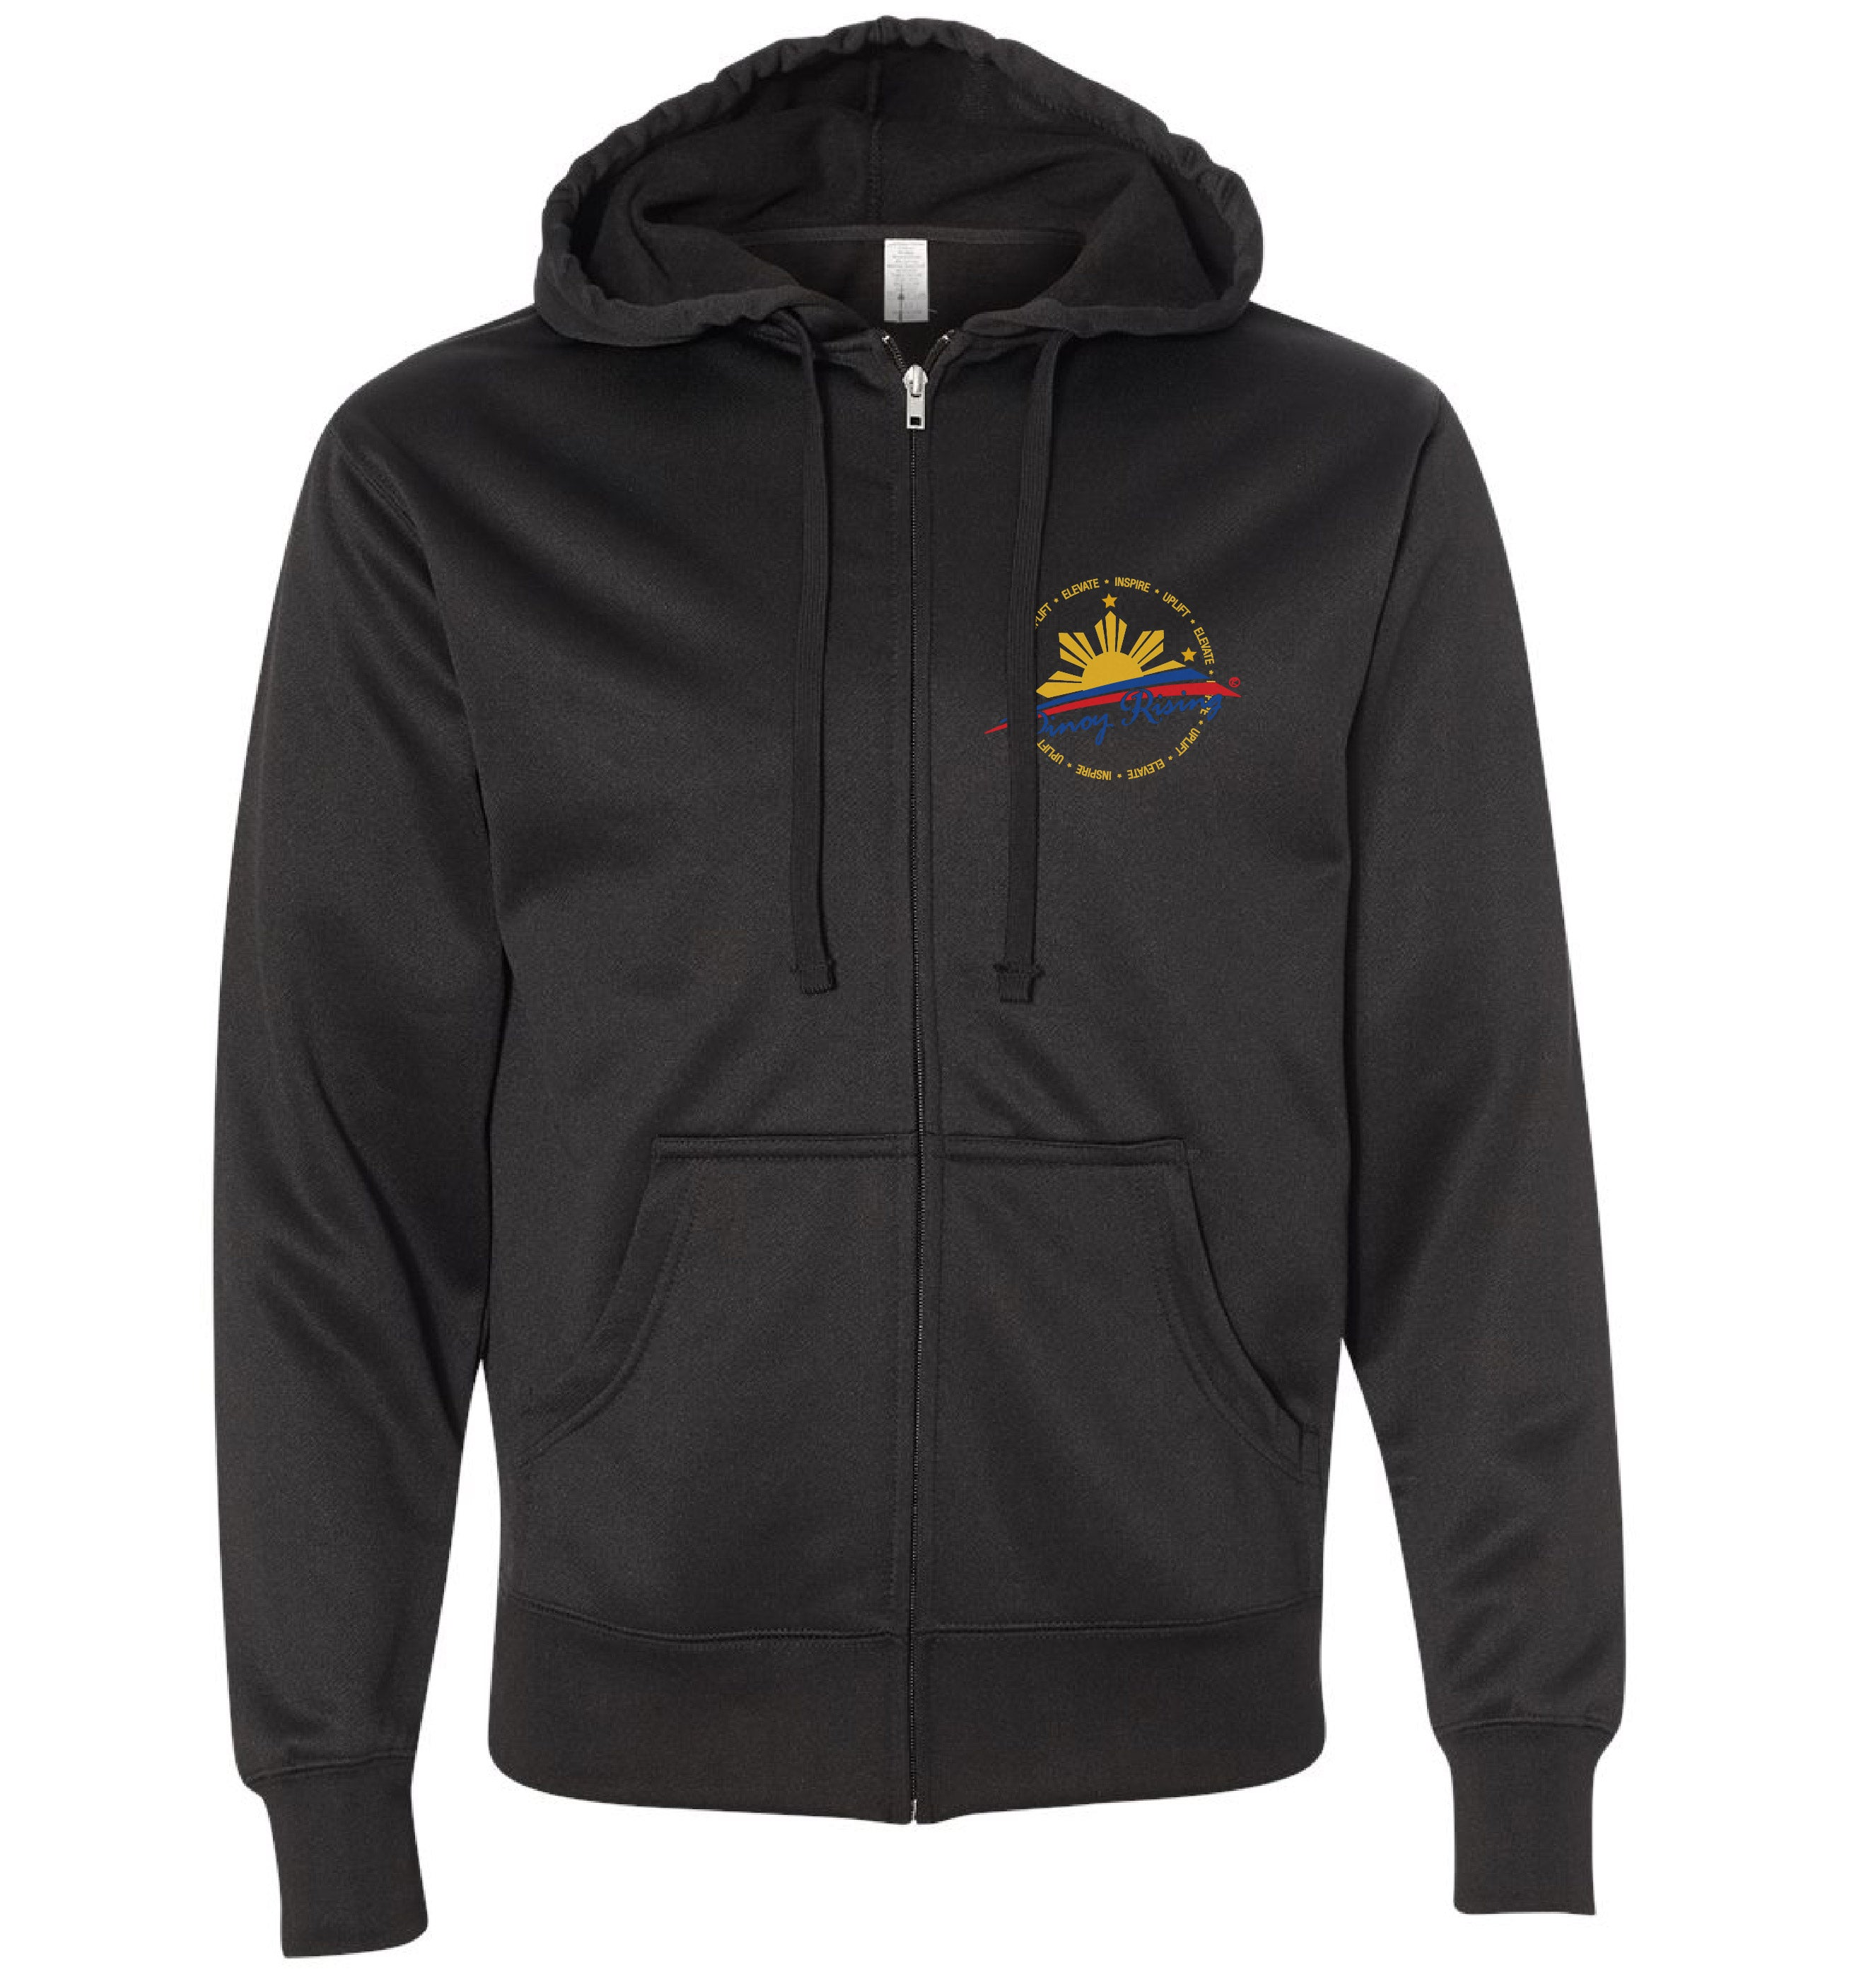 Filipino Poly-Tech Hooded Full-Zip Sweatshirt